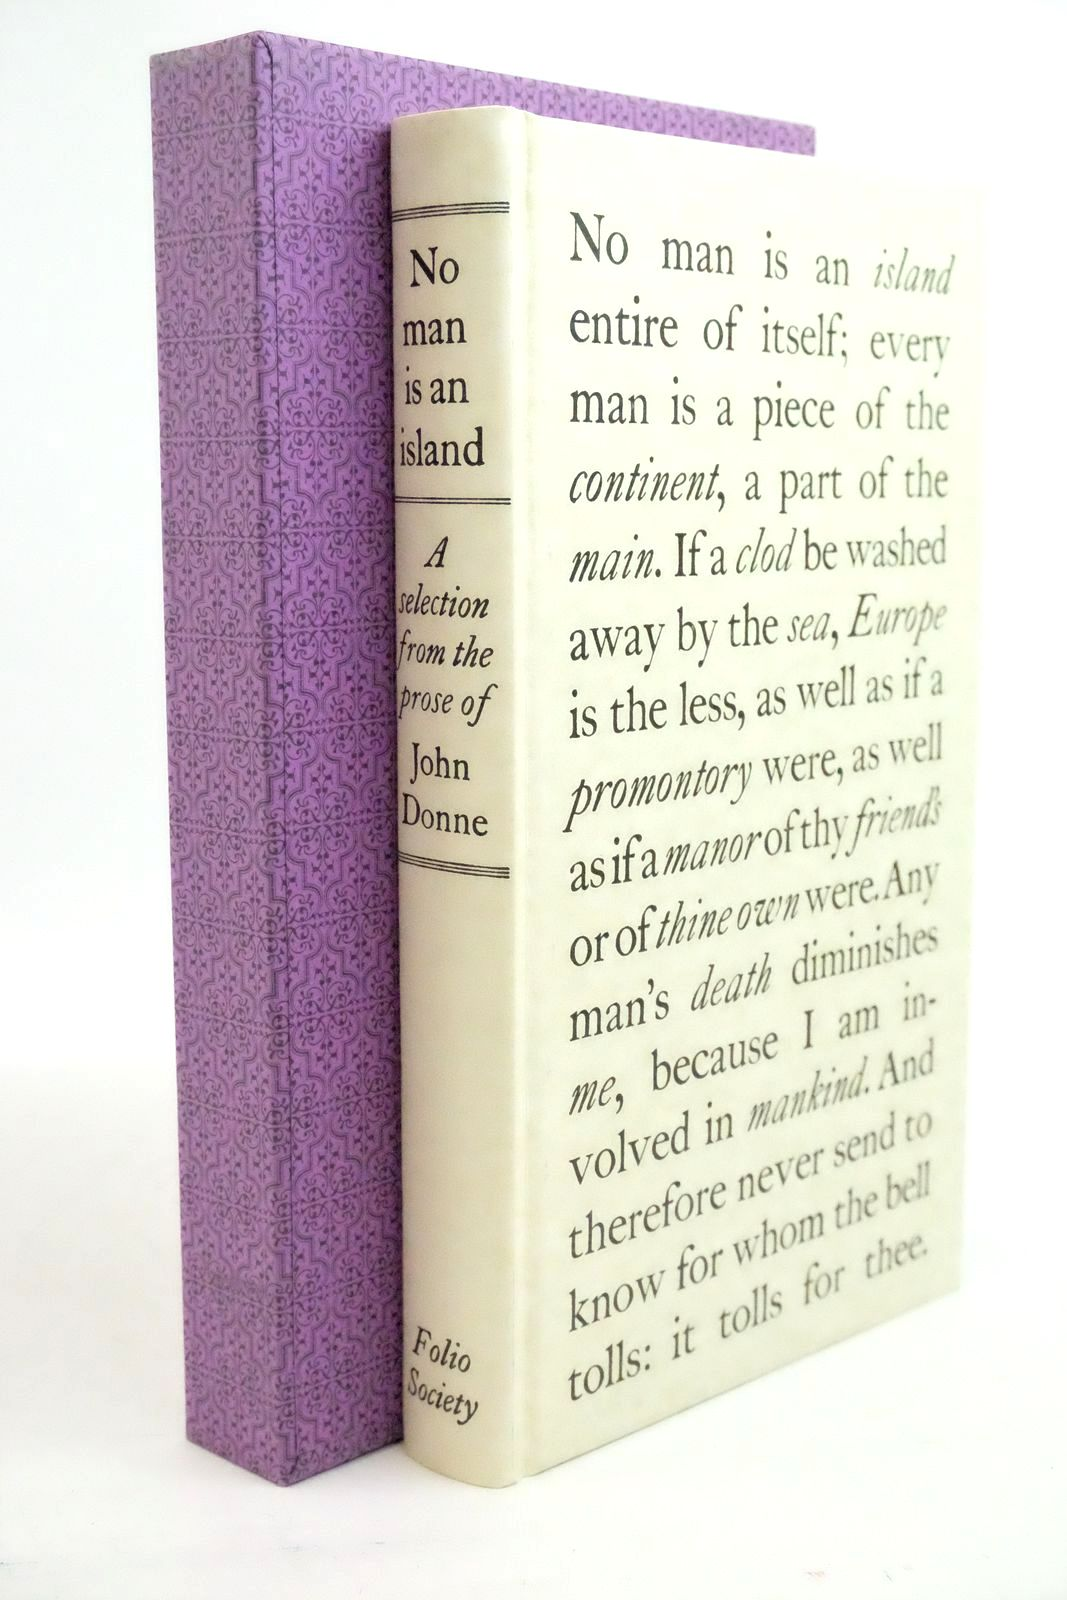 Photo of NO MAN IS AN ISLAND written by Donne, John Scott, Rivers published by Folio Society (STOCK CODE: 1321277)  for sale by Stella & Rose's Books